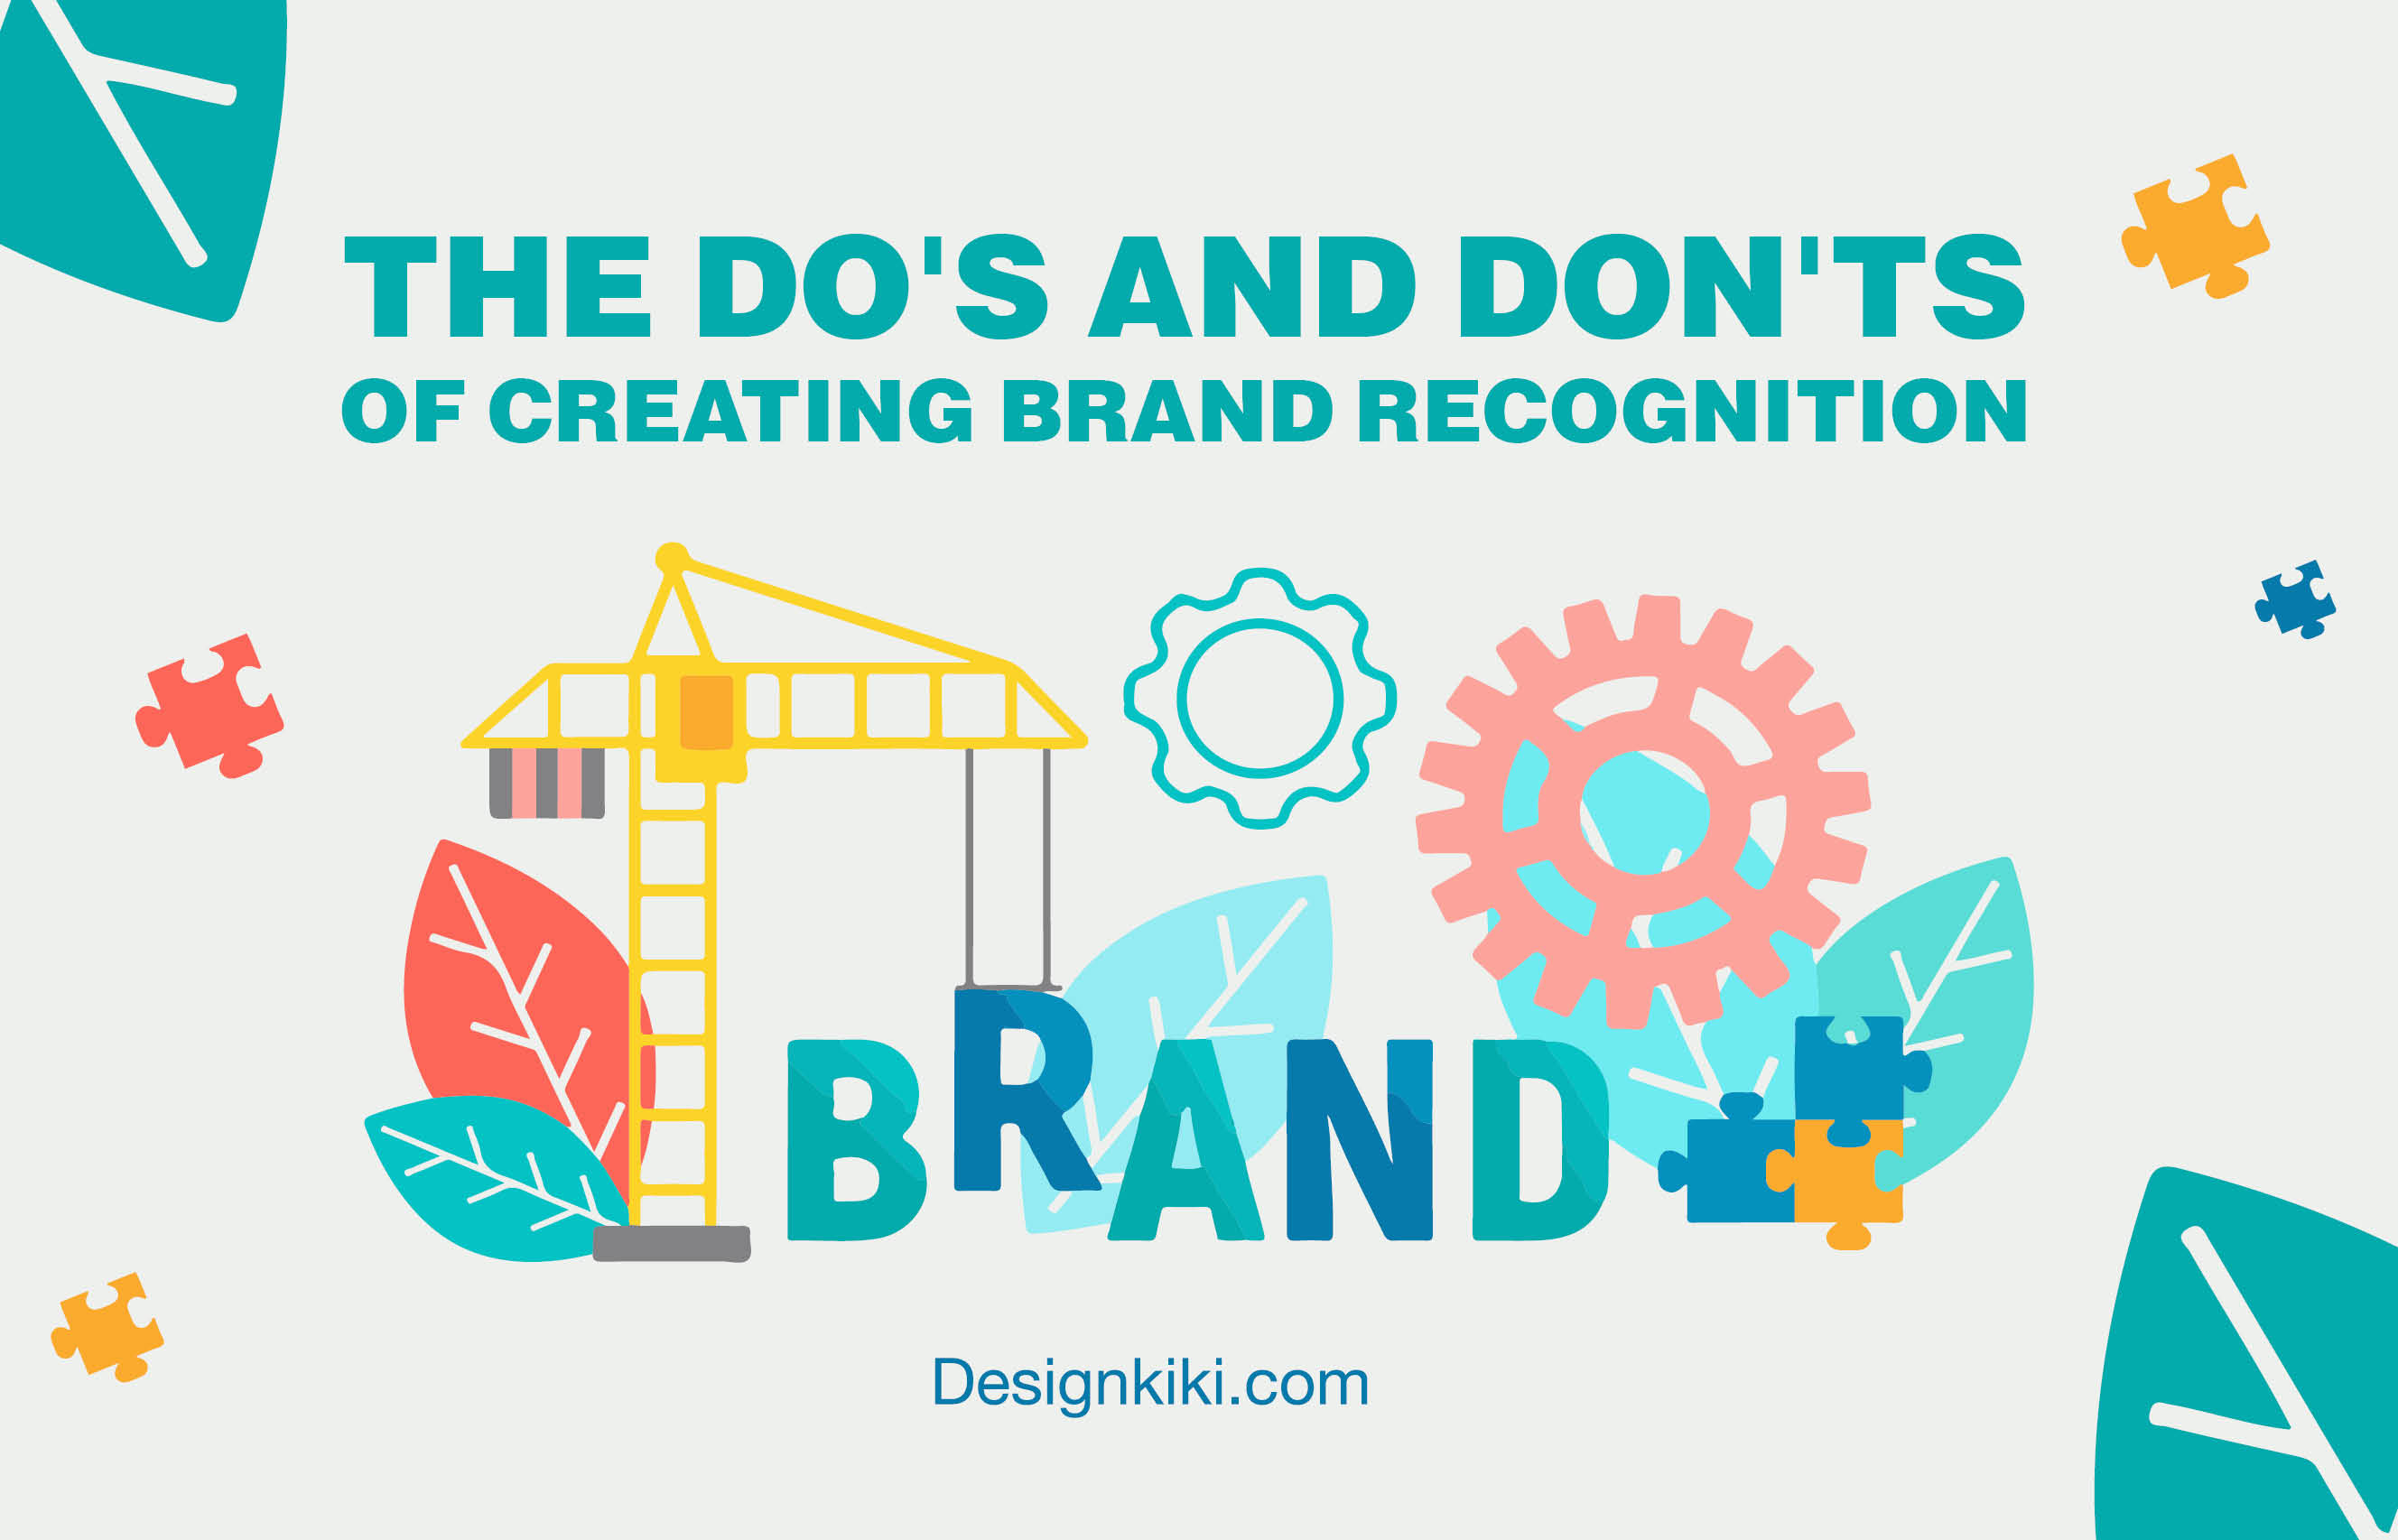 The-Dos-And-Don'ts-Of-Creating-Brand-Recognition-For-Your-Small-Business